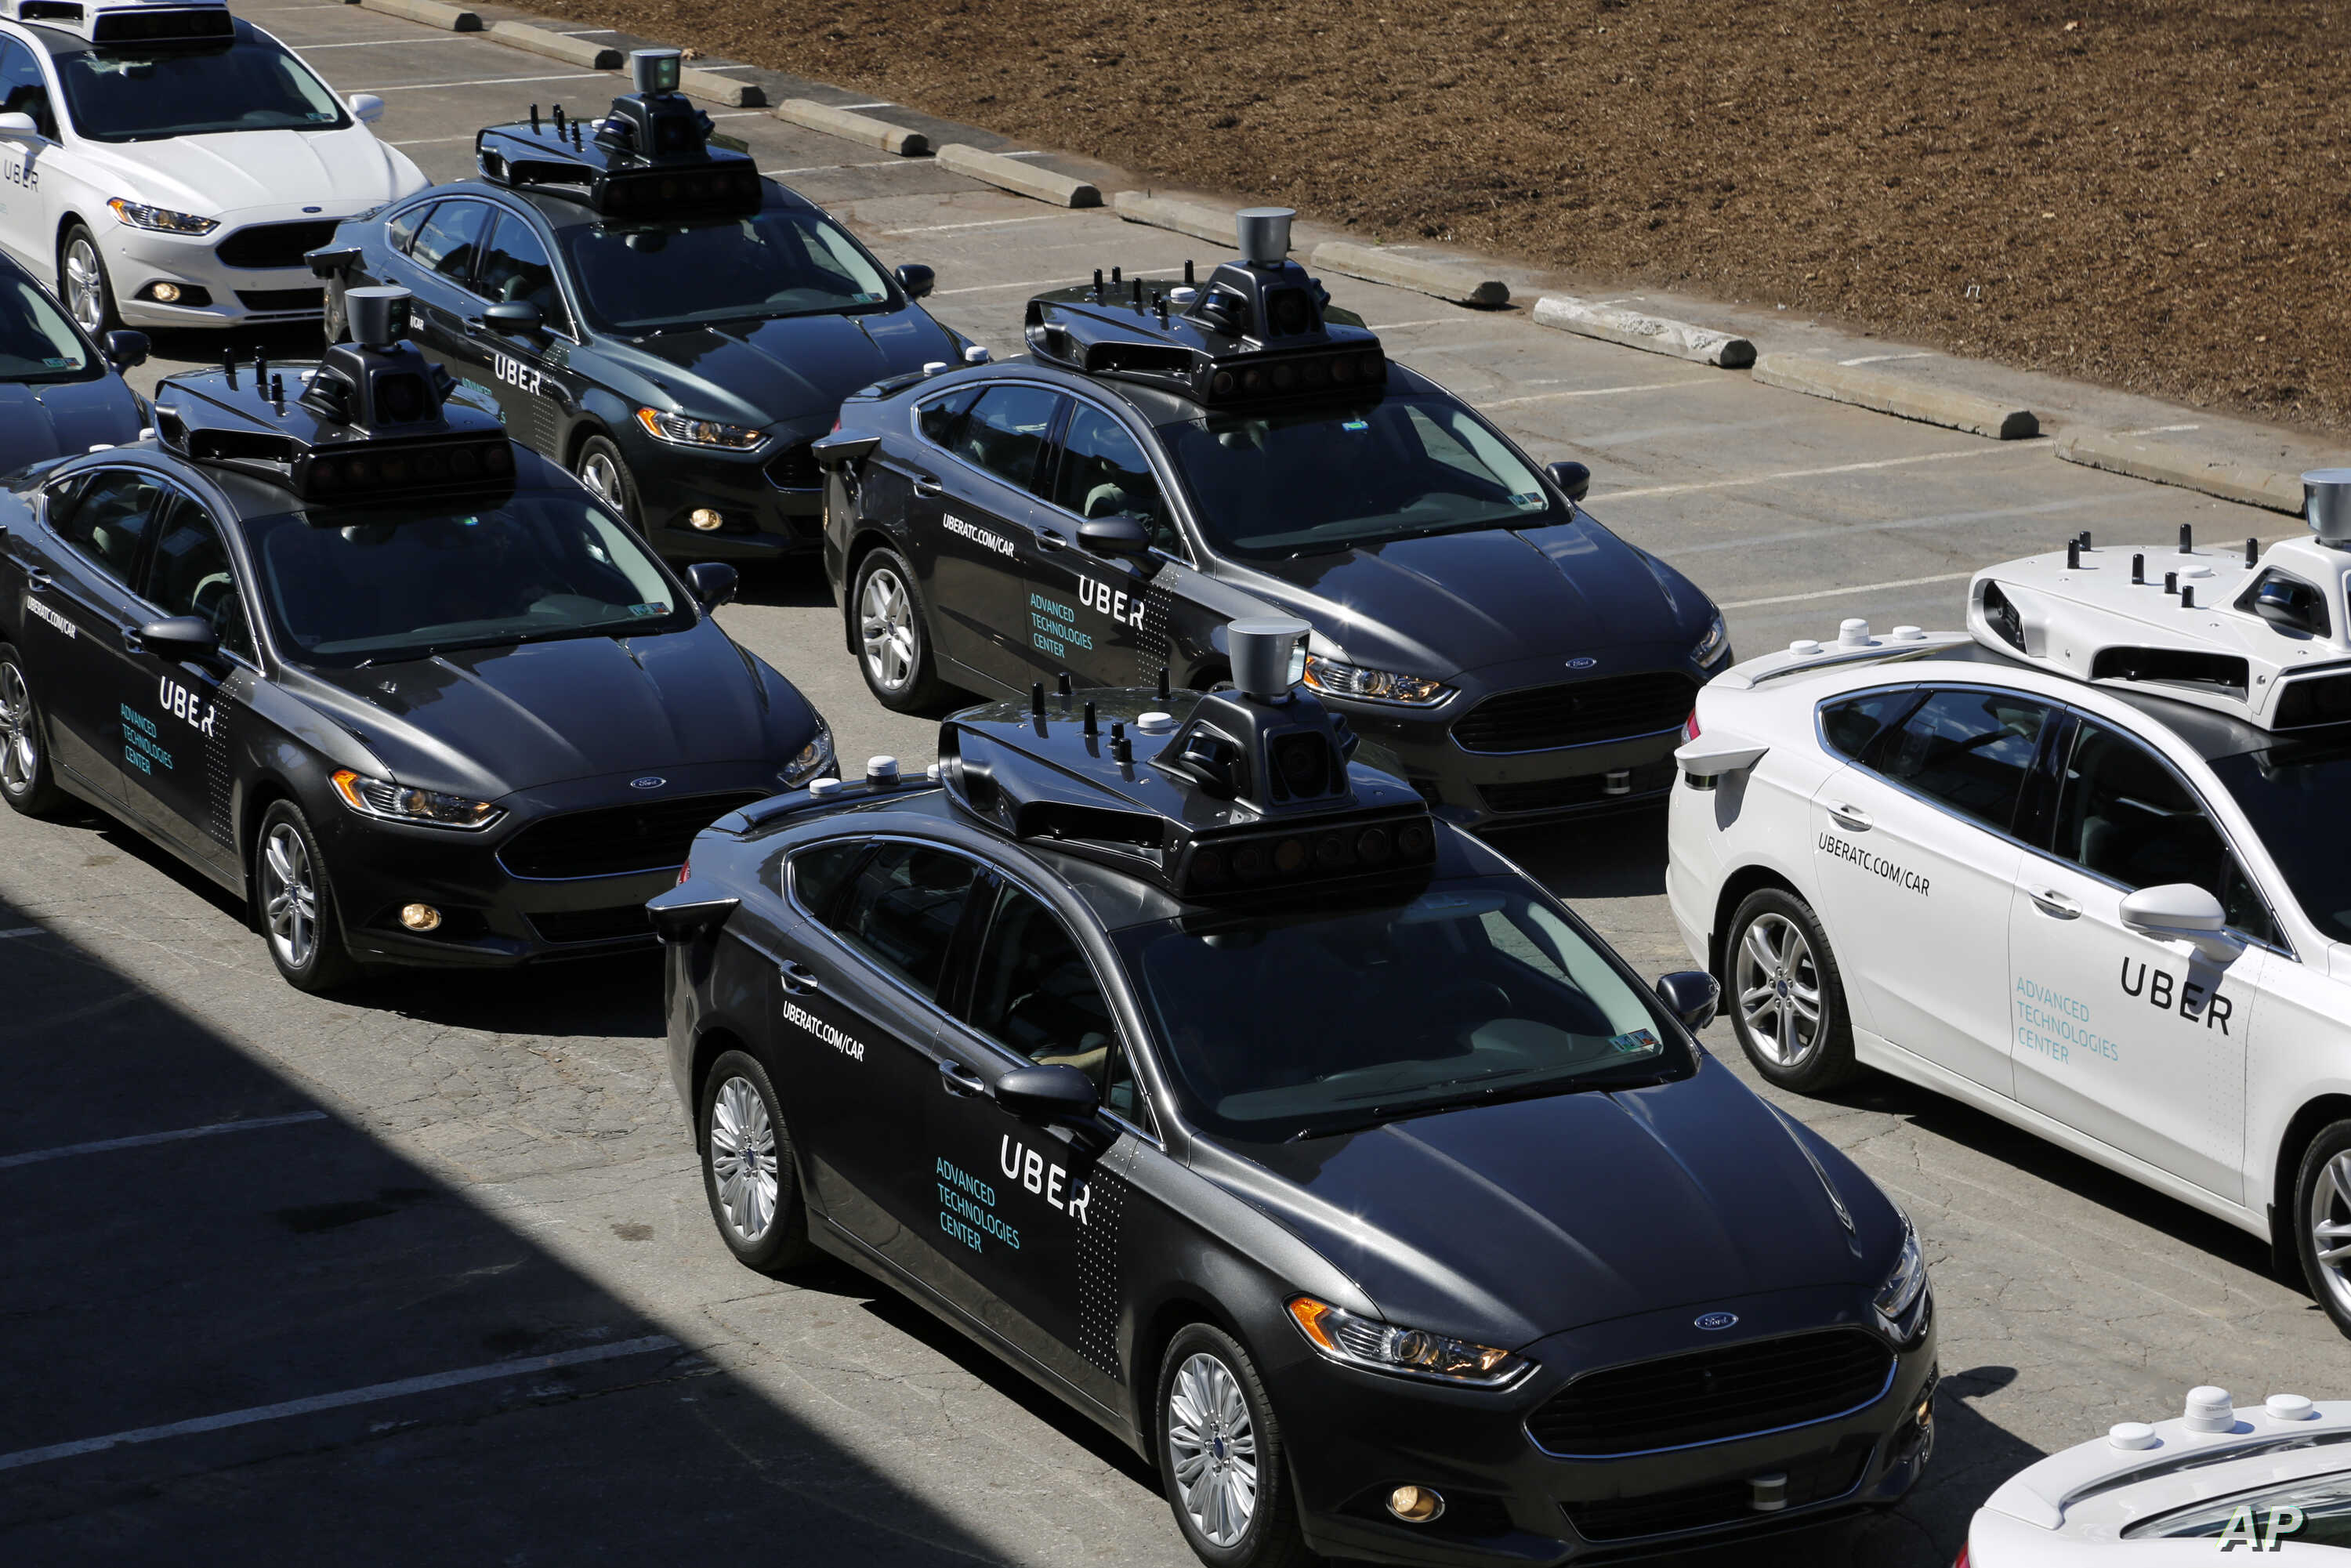 US Government Unveils Driverless Car Guidelines | Voice of America